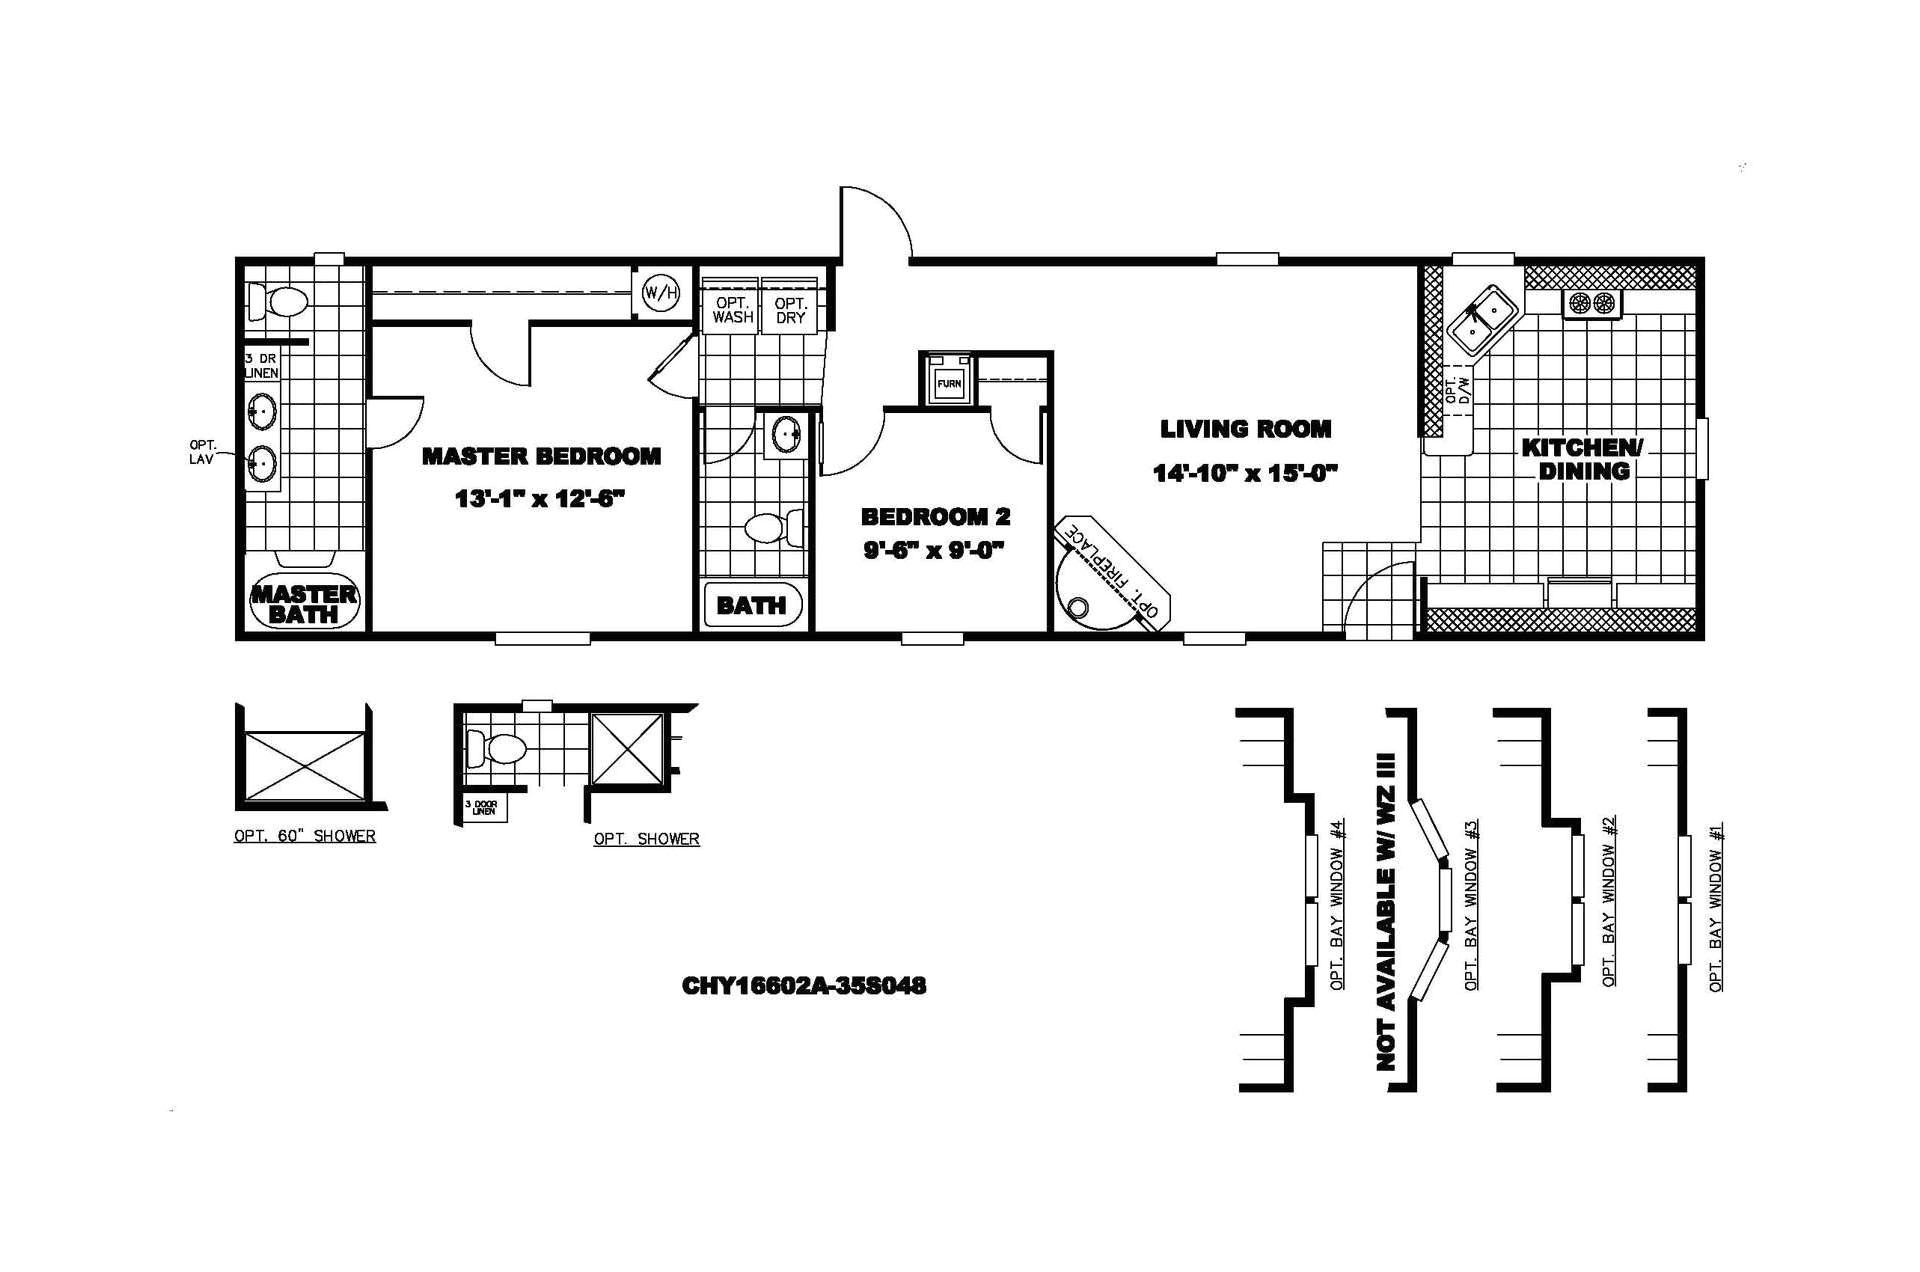 manufacturedhomefloorplan floorplan 3841 state nm city albuquerque